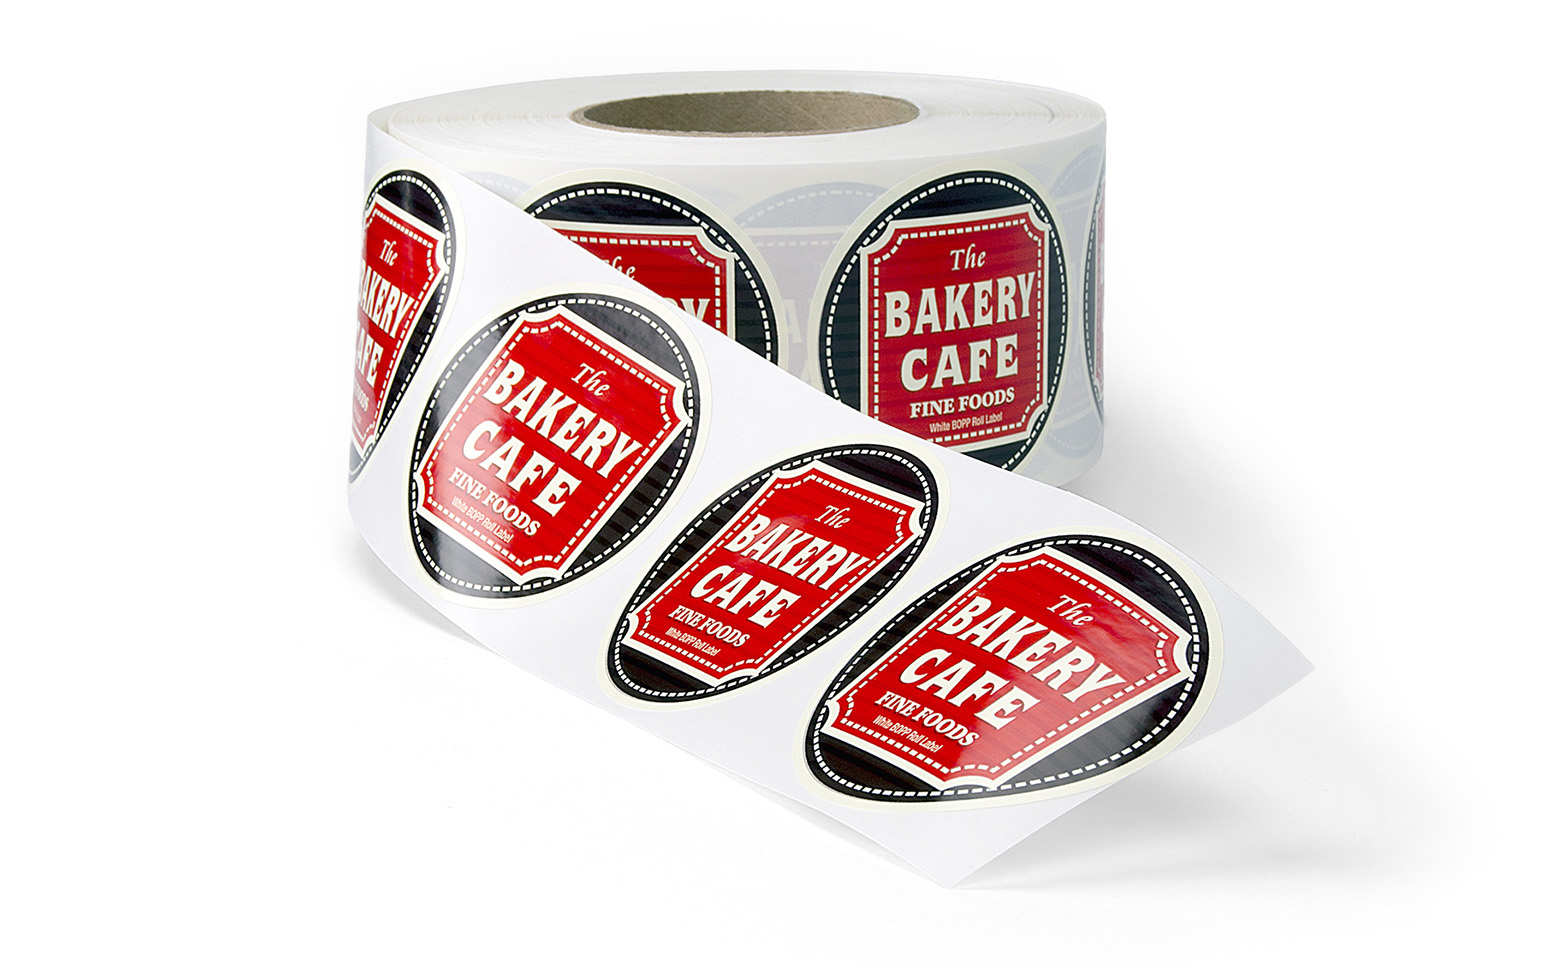 This is a BOPP Roll Label for a Bakery